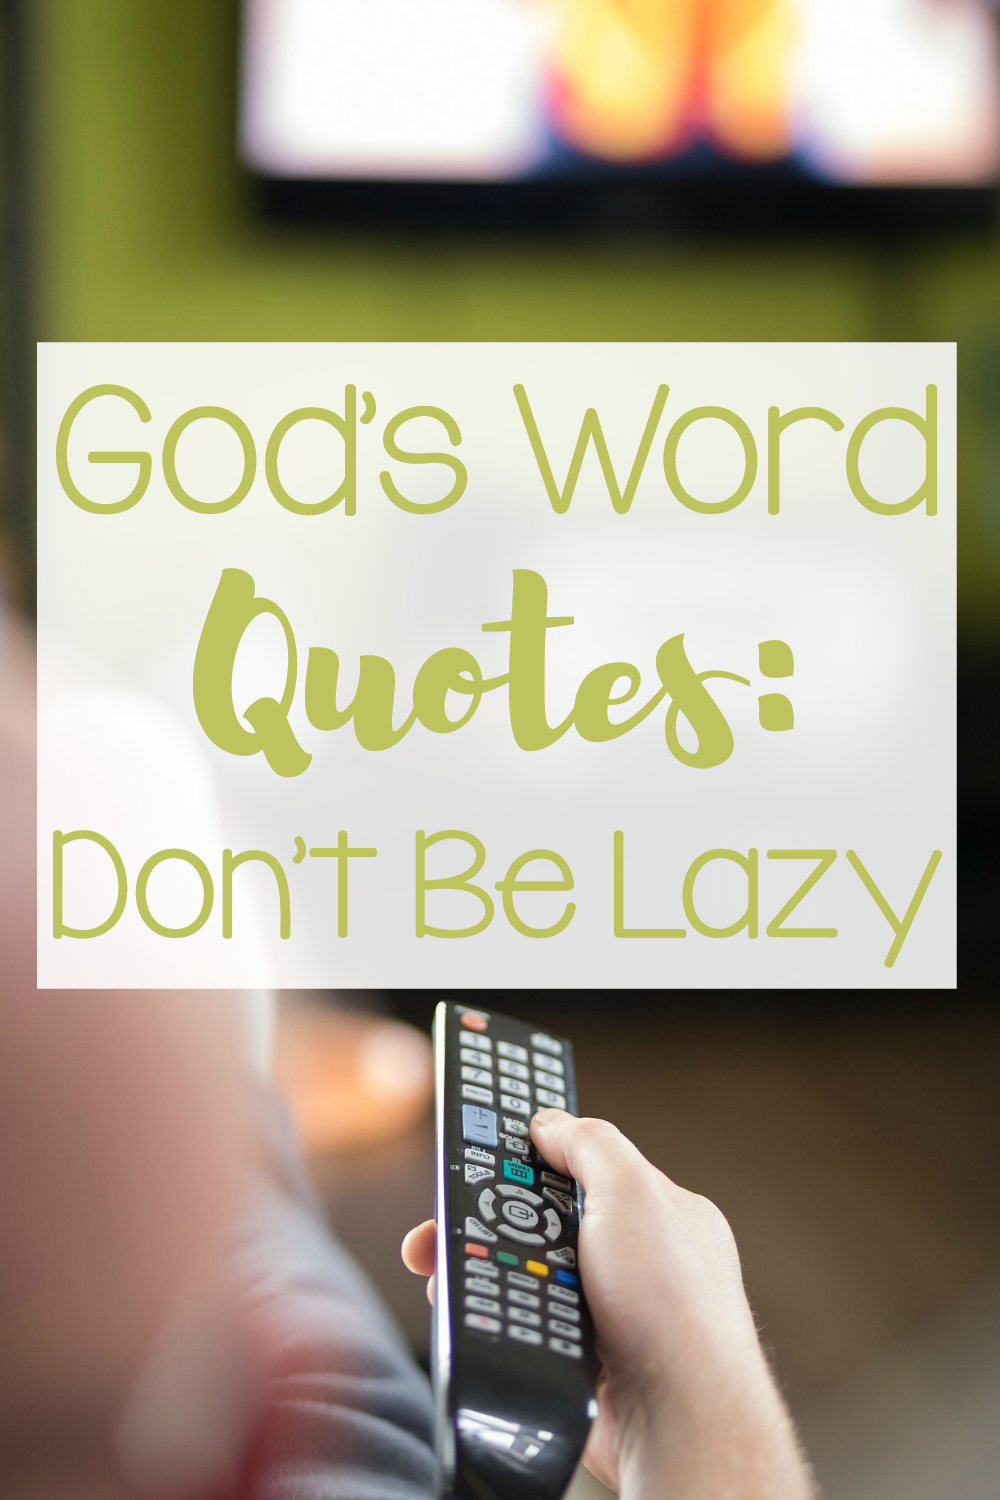 God's Word Quotes God's Word Quotes Put In The Good Work • The Littlest Way